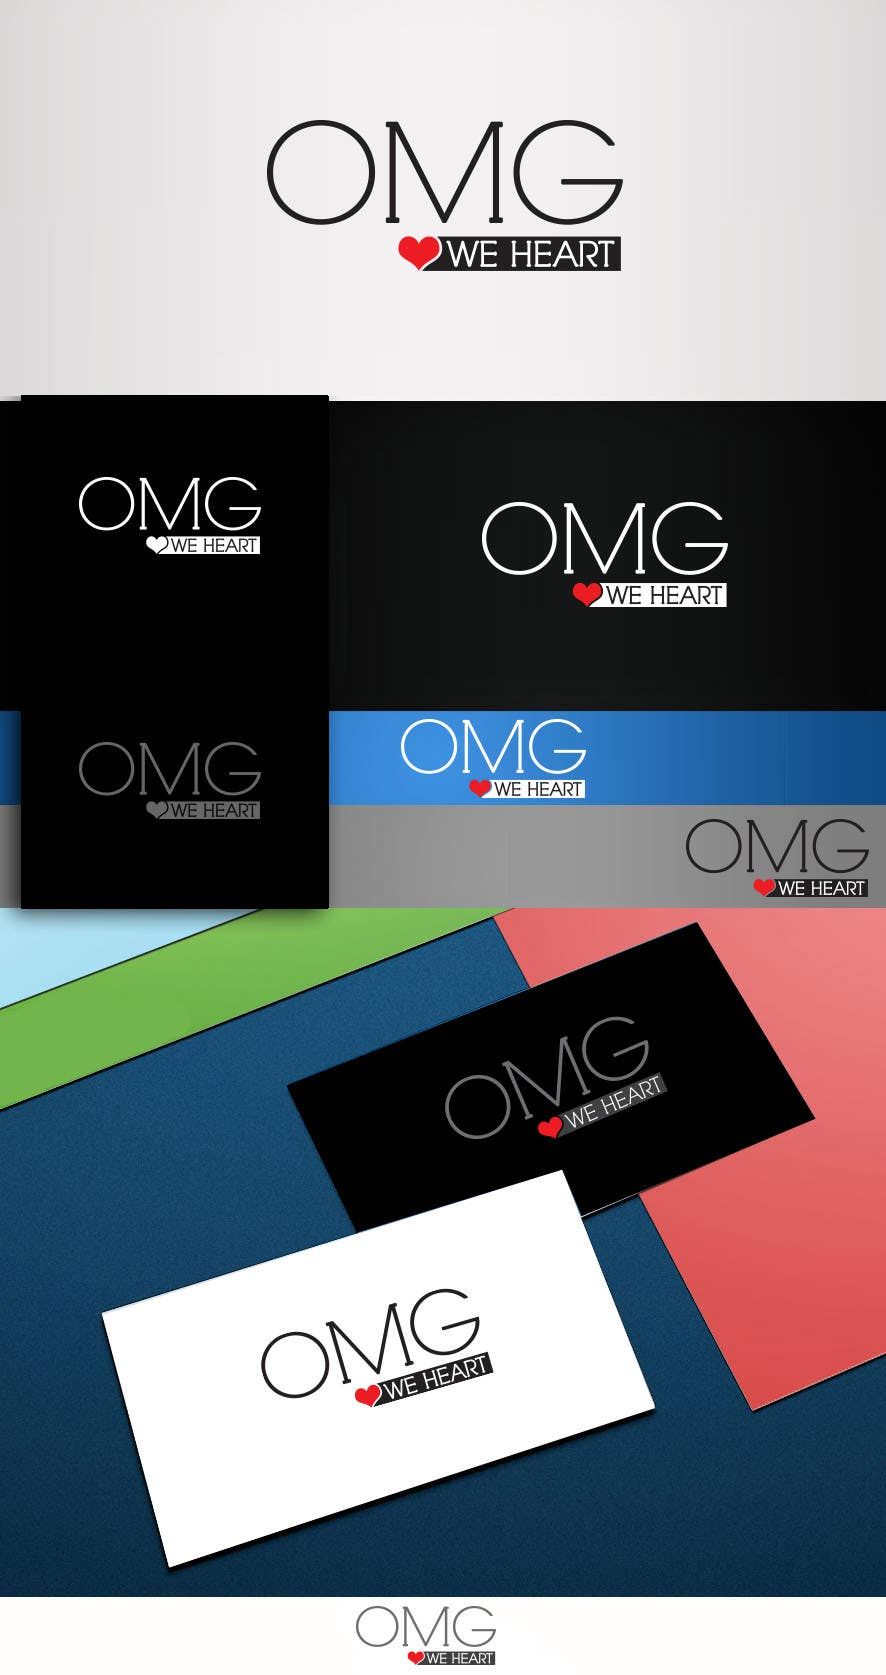 Proposition n°93 du concours Logo Design for new Company name: OMG We Heart.  Website: www.omgweheart.com